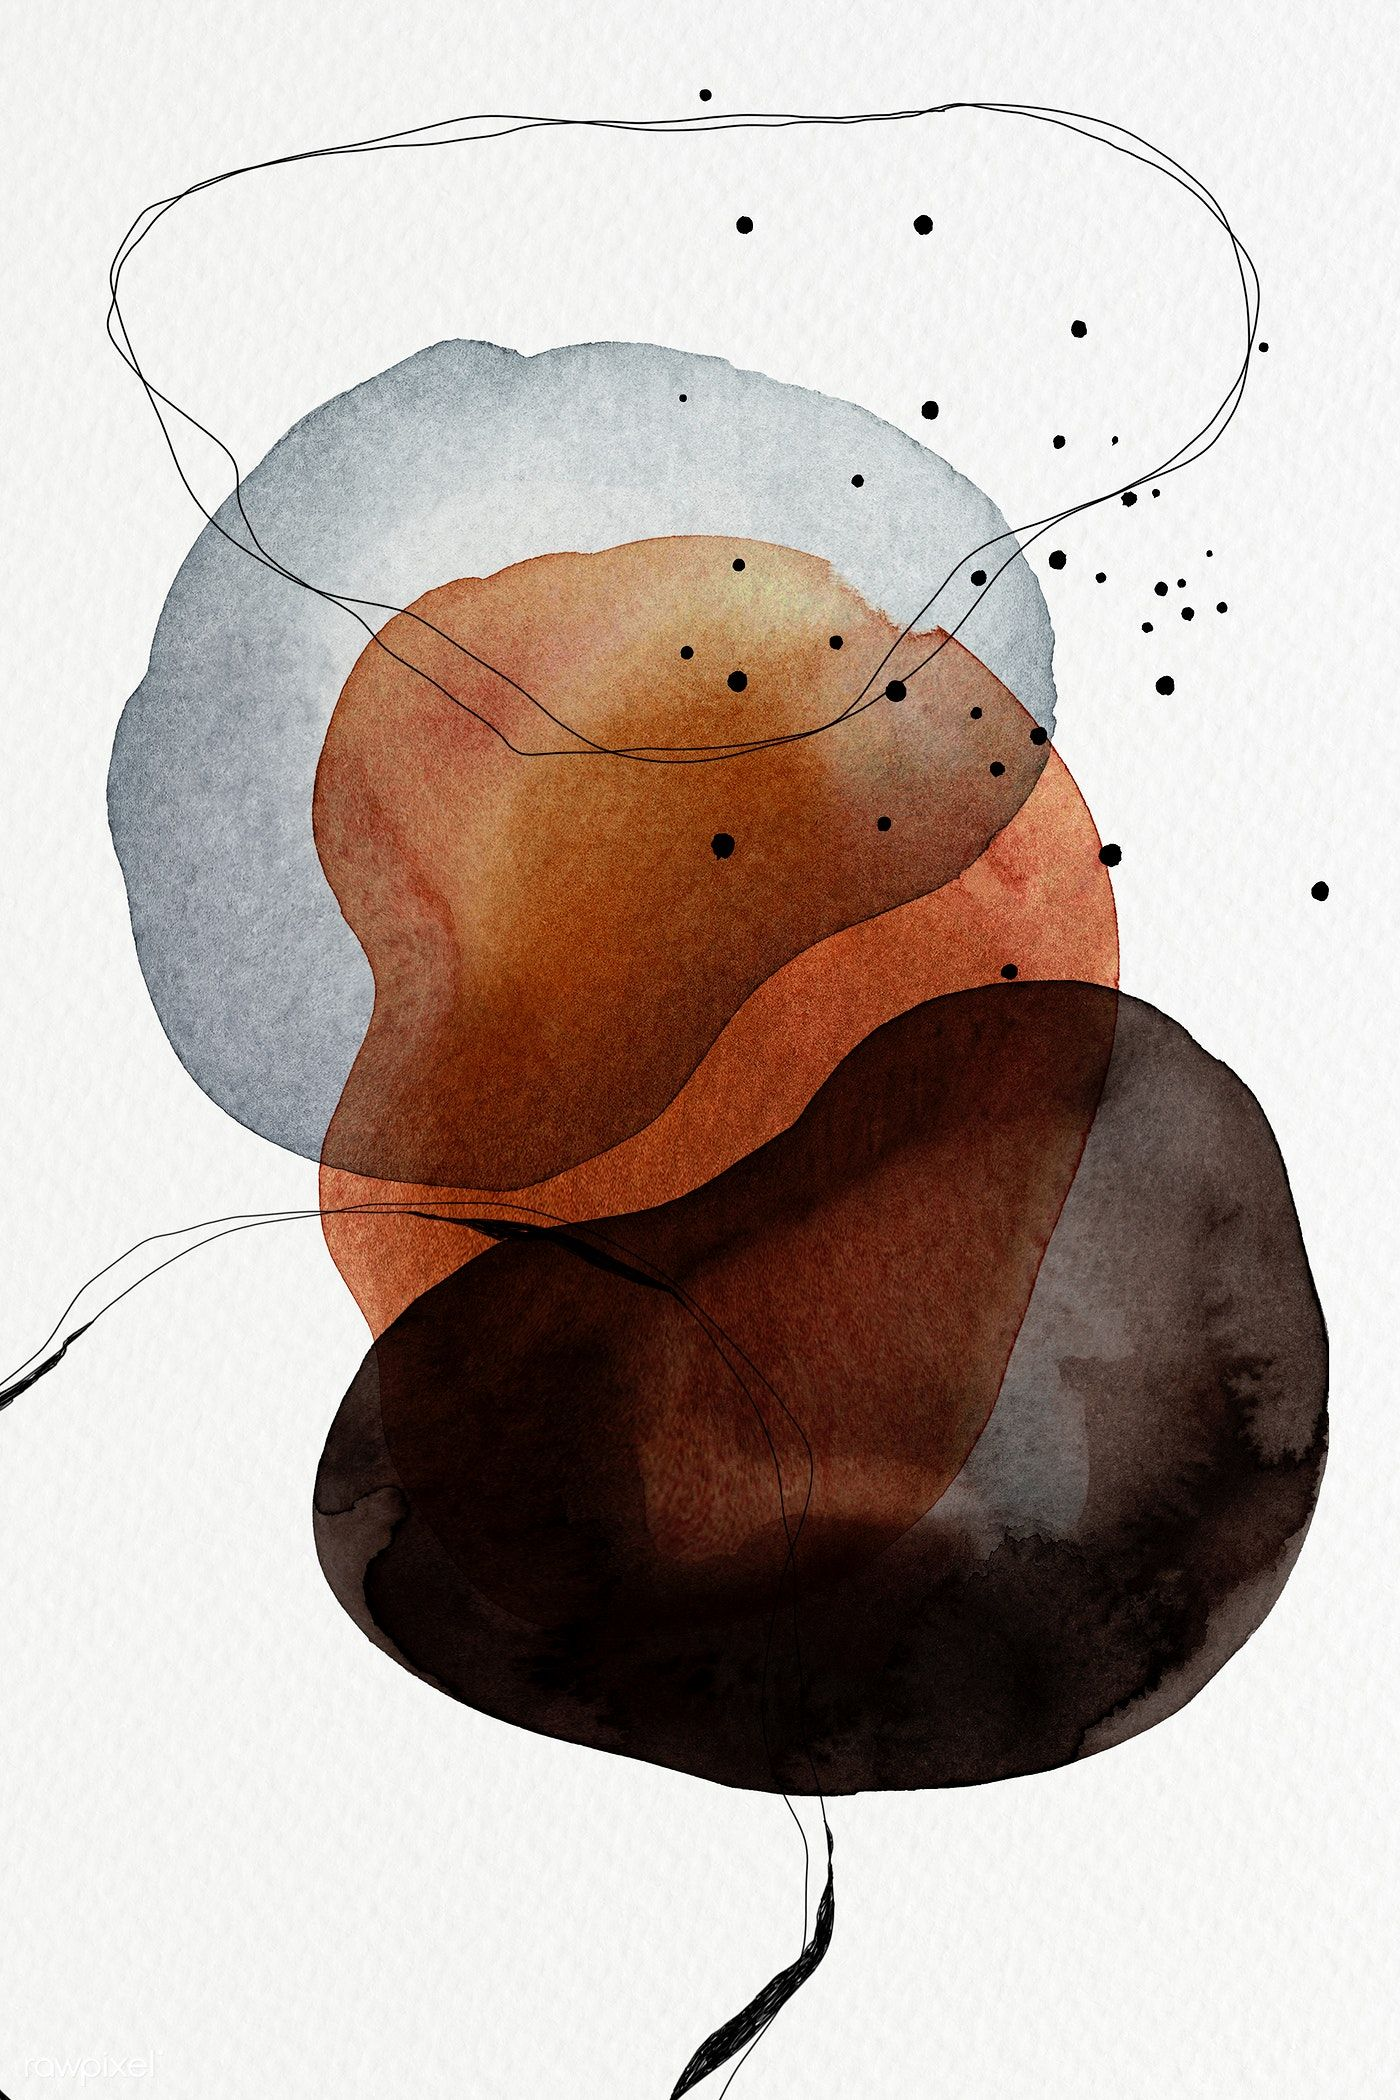 Download premium illustration of Colorful abstract watercolor circles